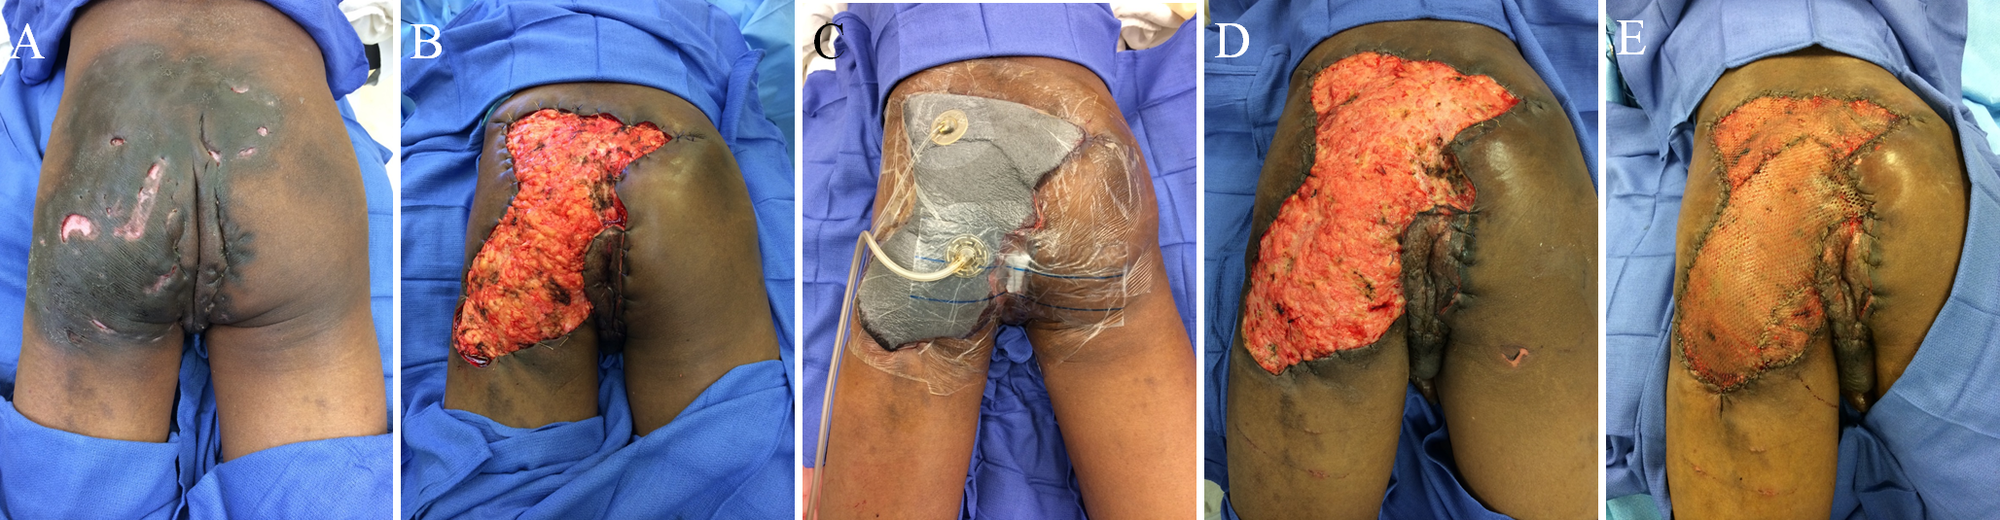 Cureus | Negative Pressure Wound Therapy with Instillation